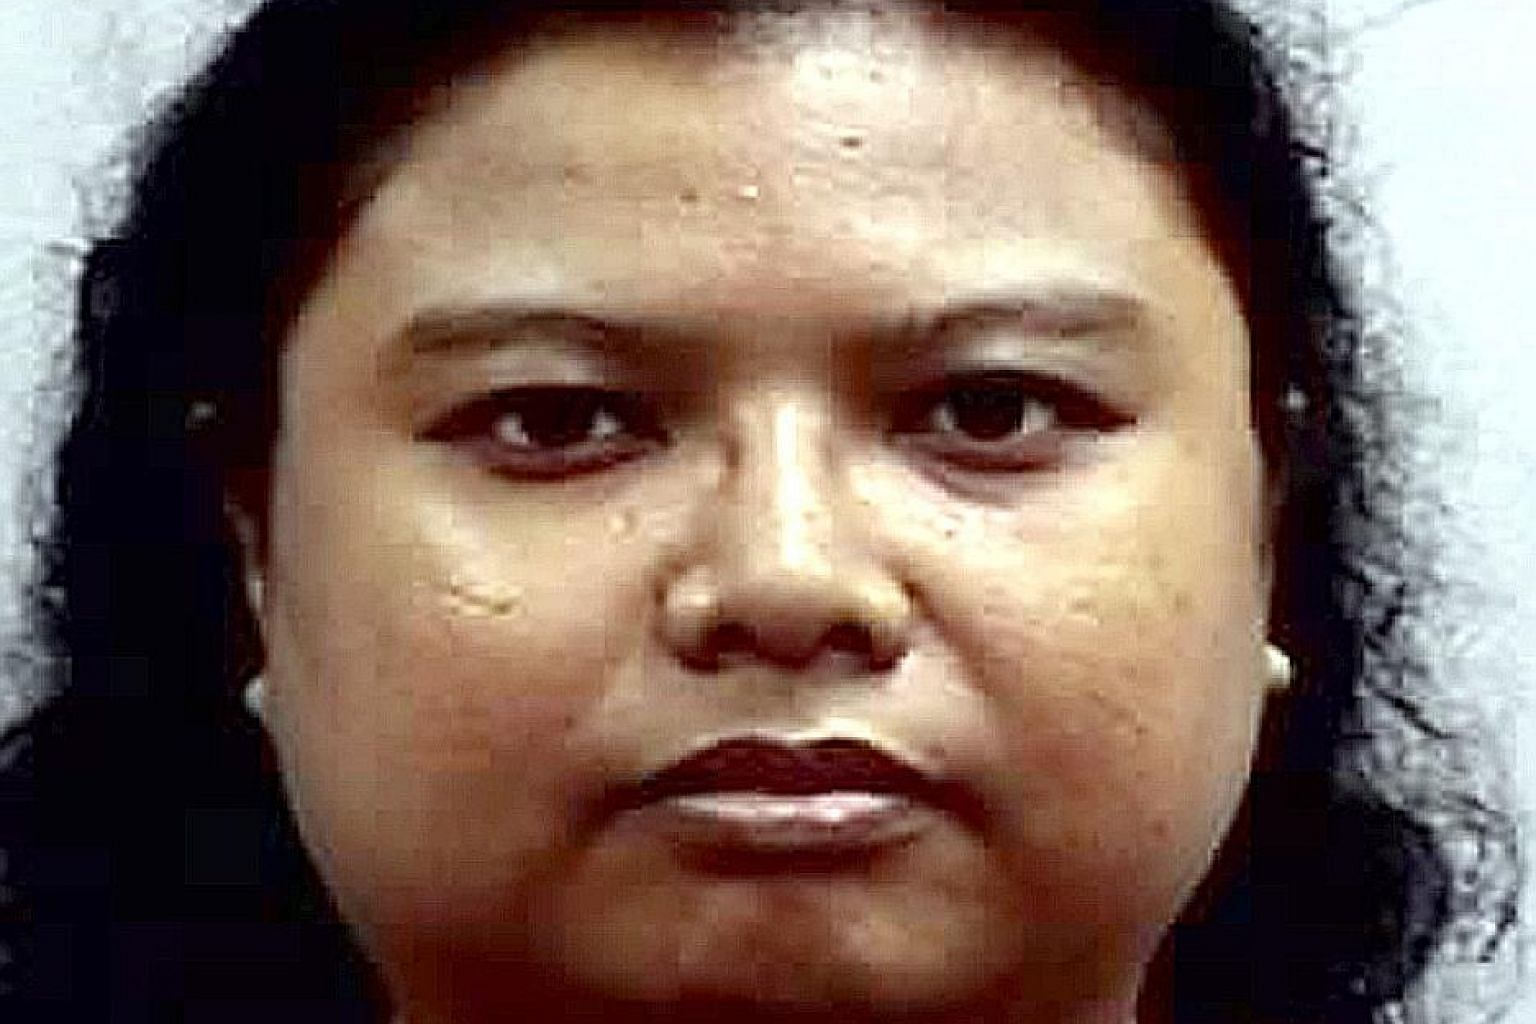 Salleha Mohd Aris received about $492,000 from 102 victims. She was sentenced to jail for 41 months and a week.